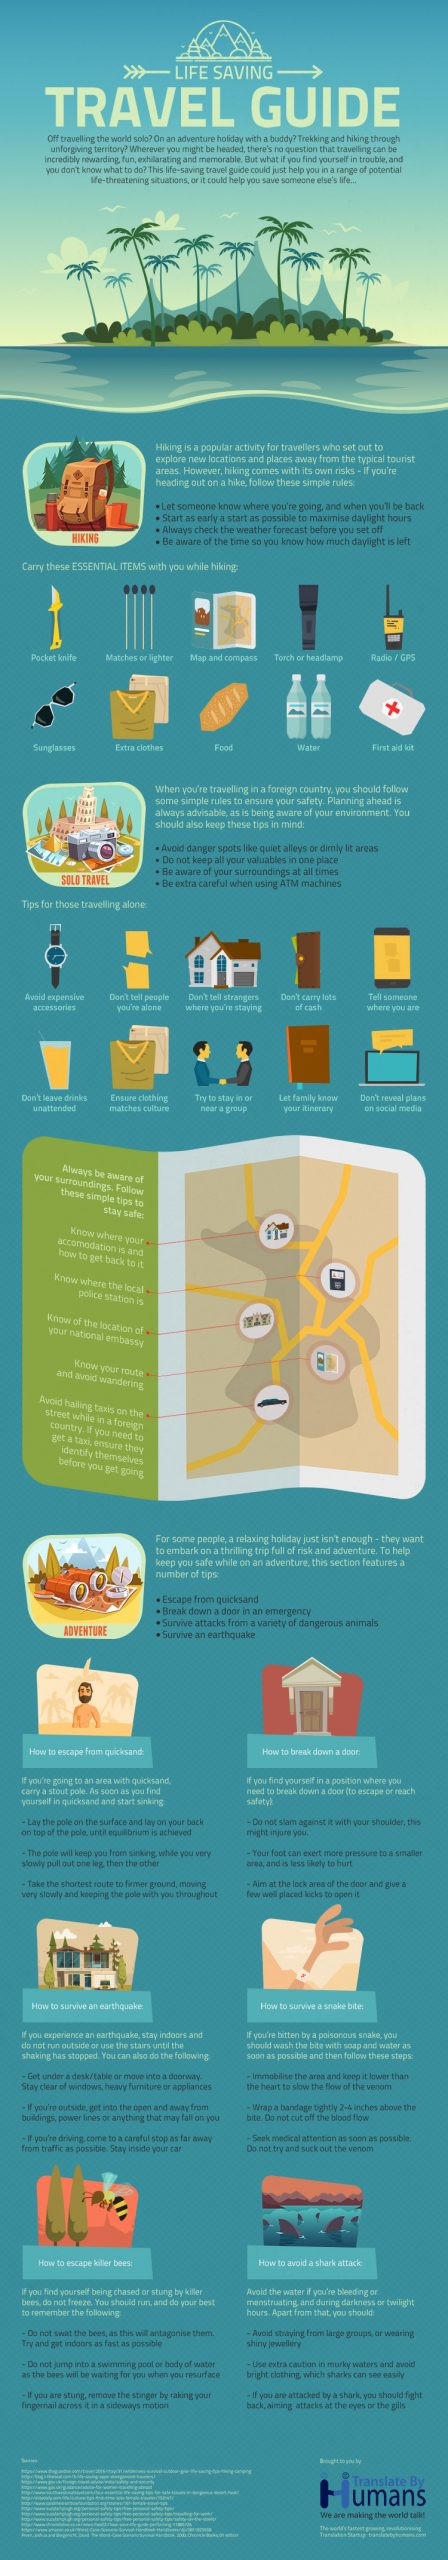 Travel Guide